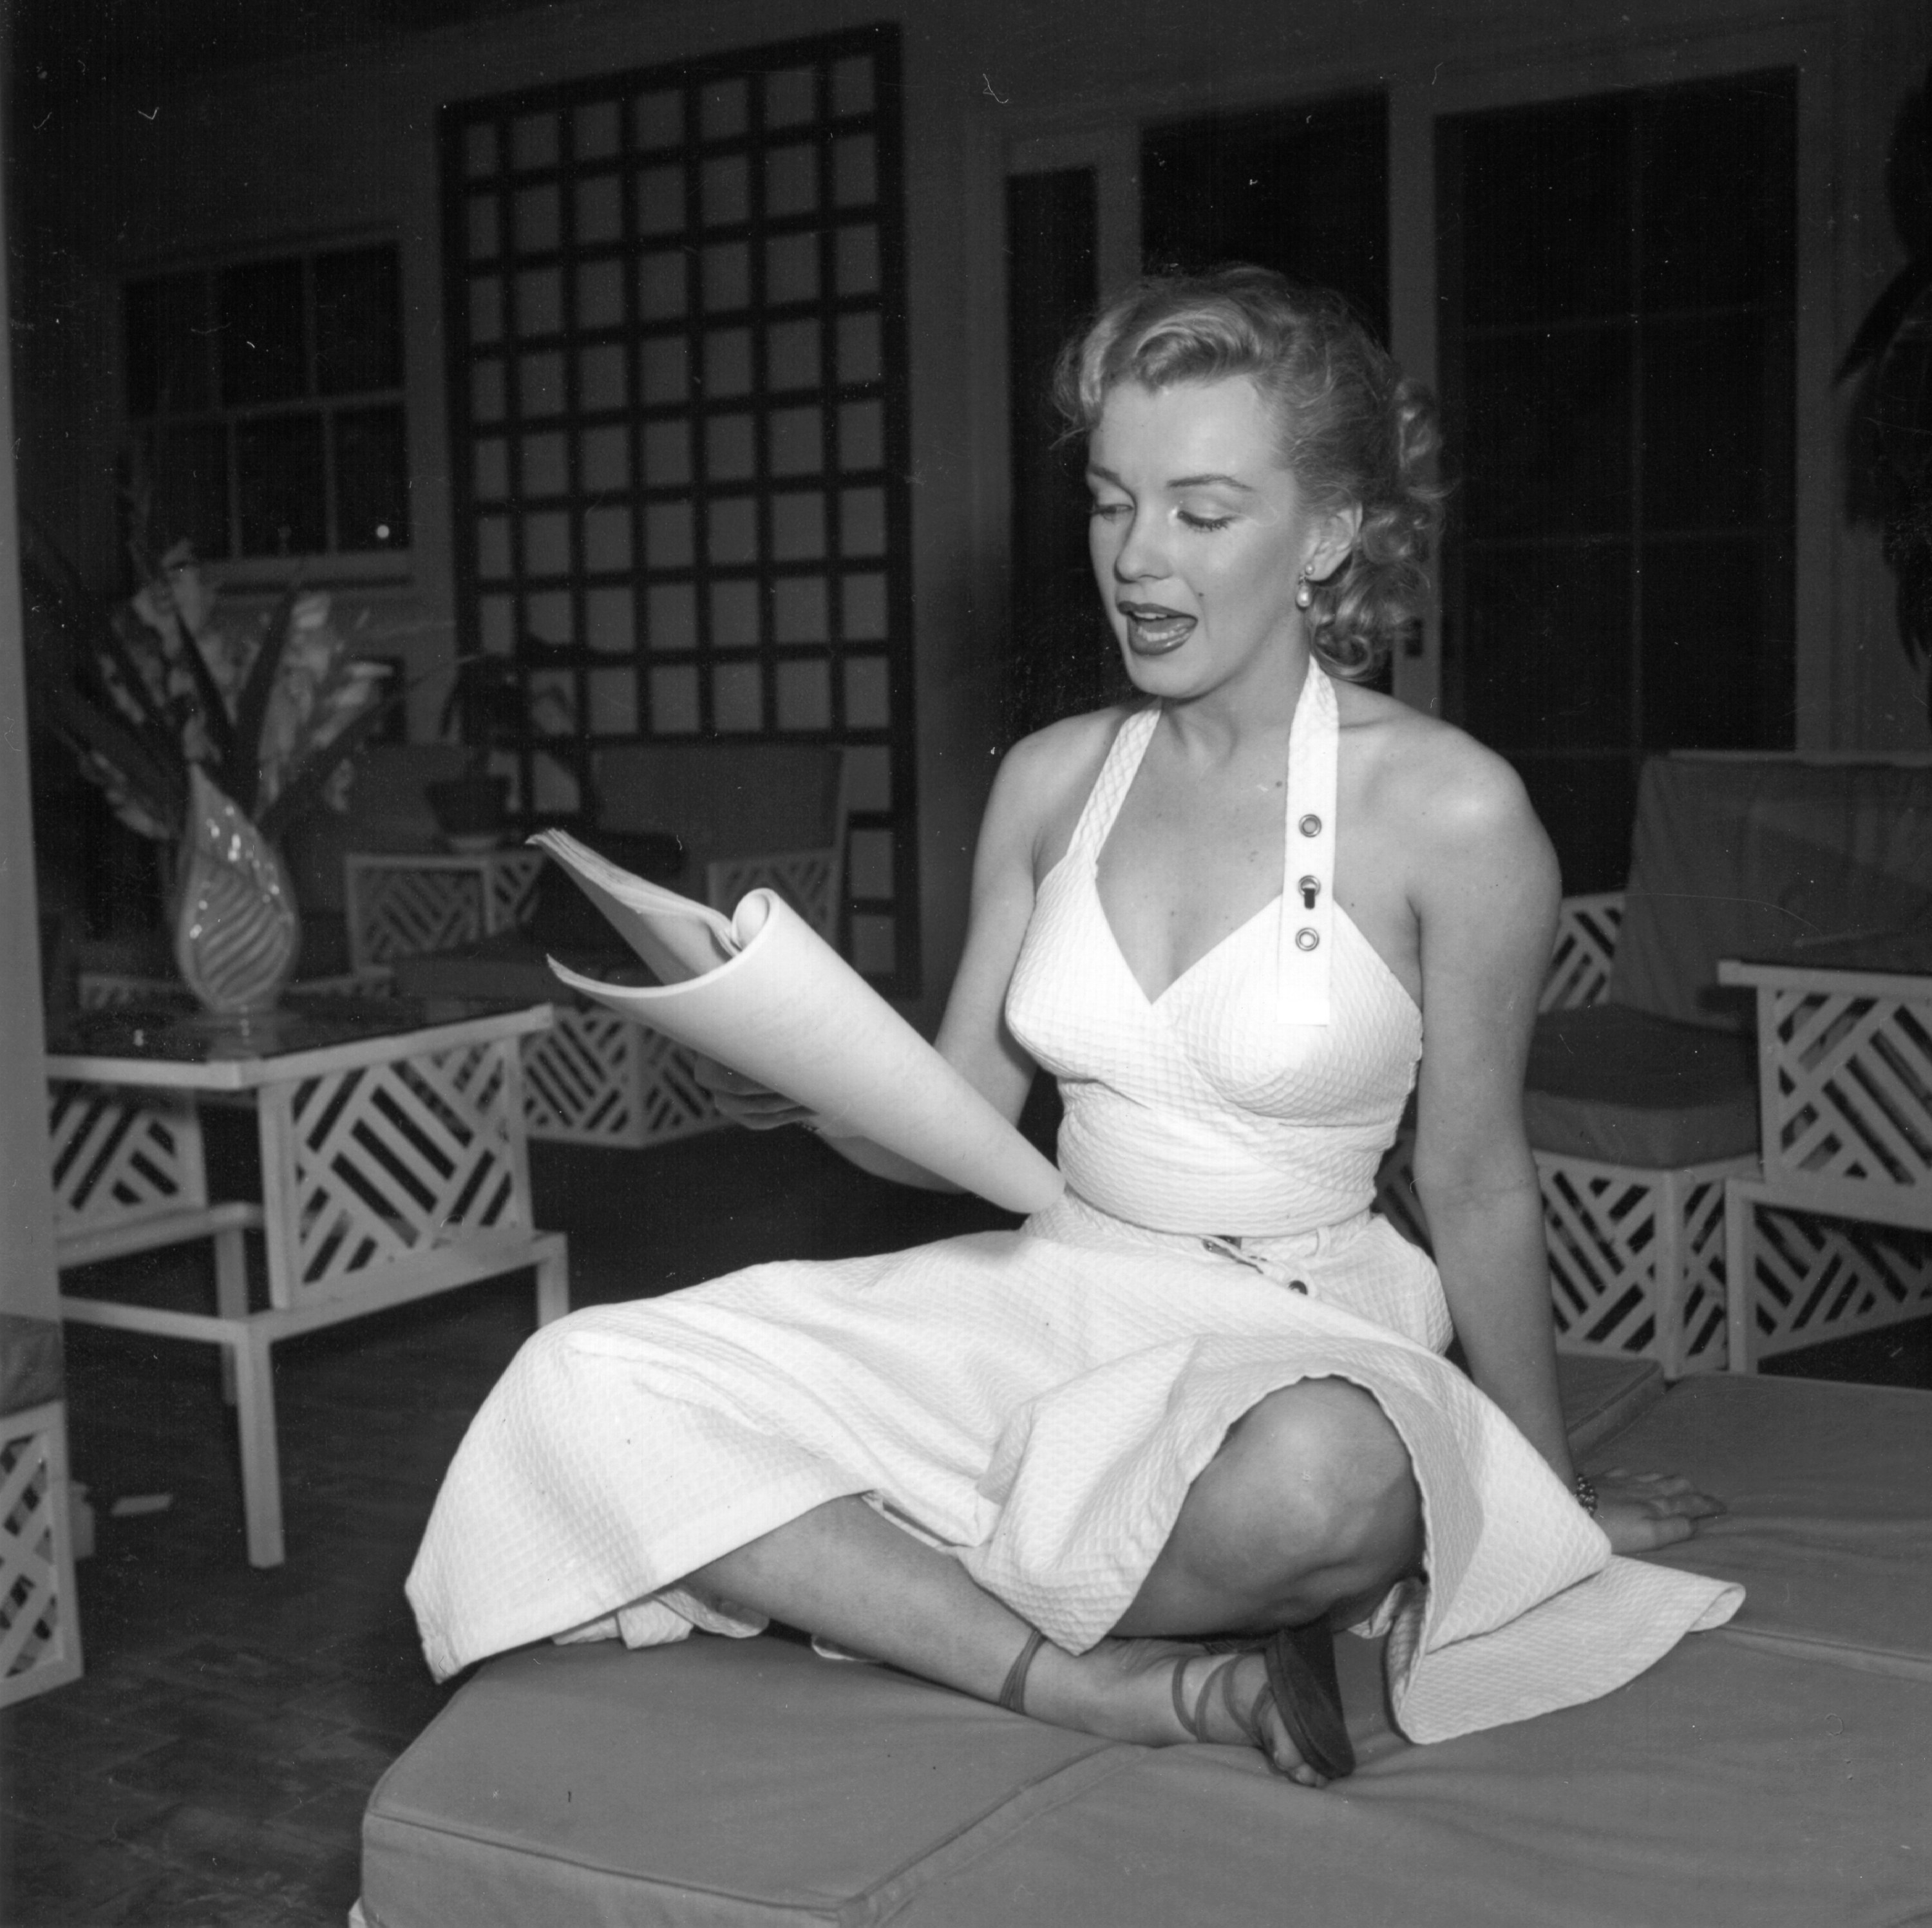 Marilyn Monroe sits with her legs crossed and reads a book